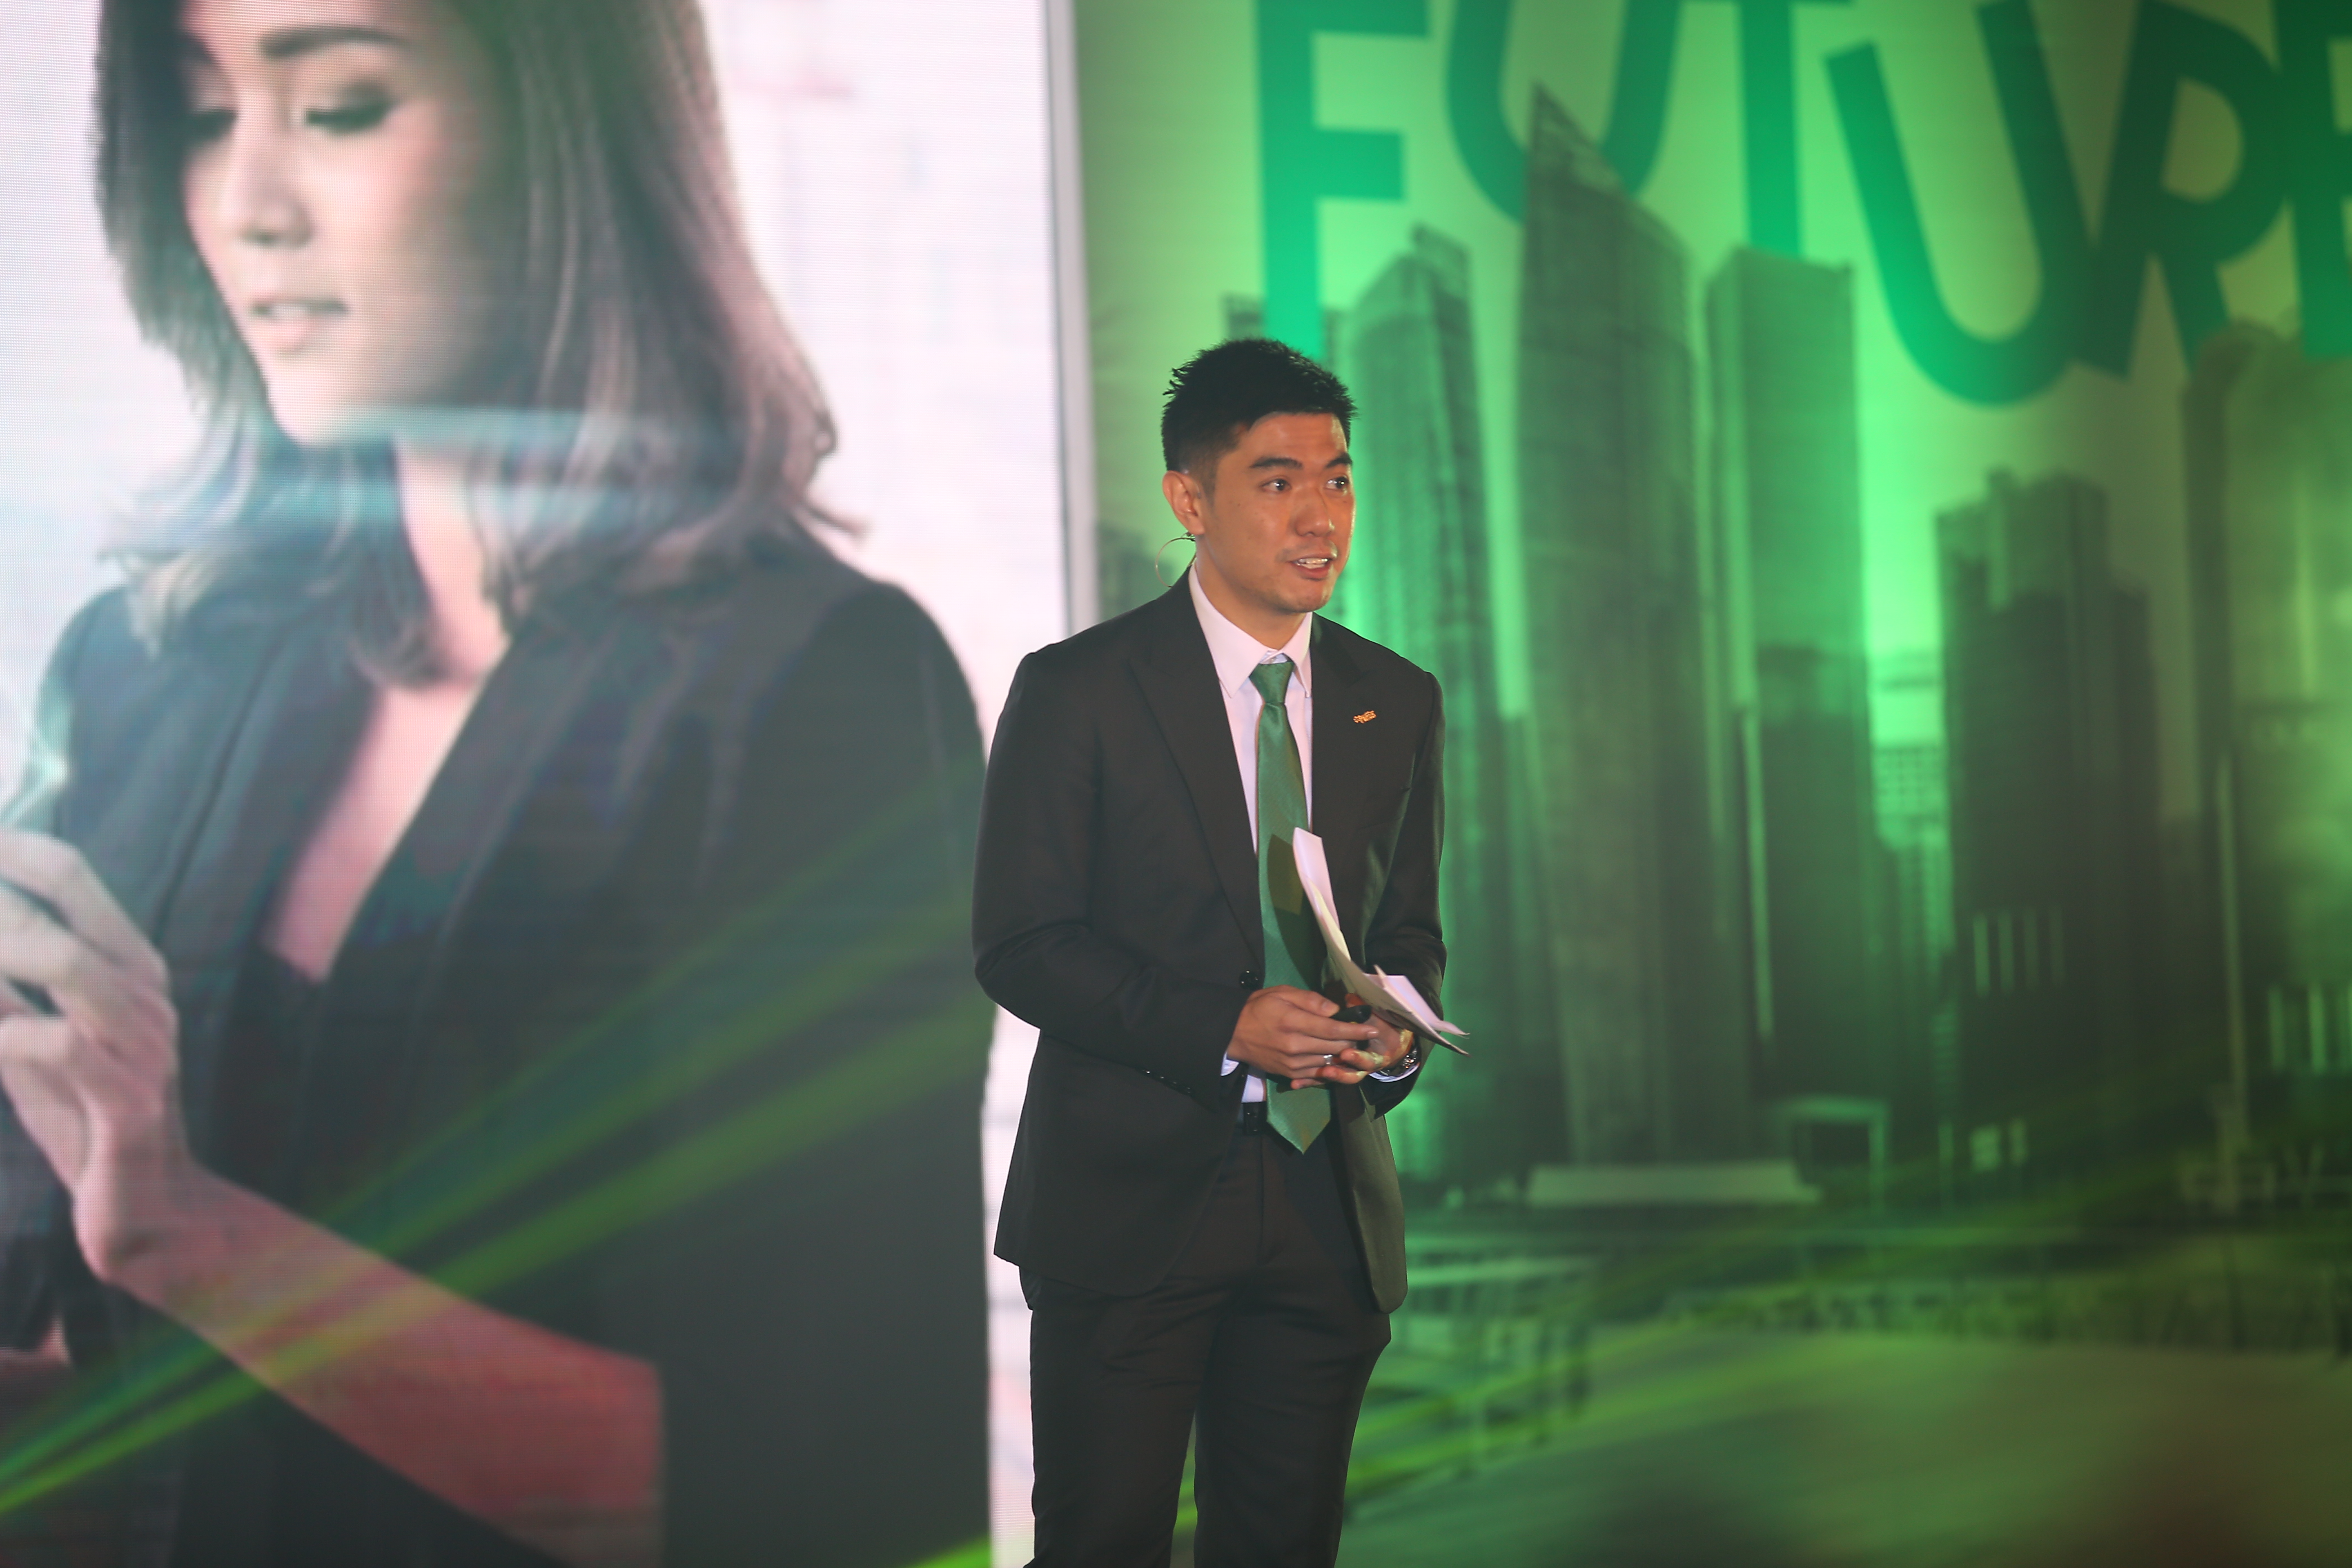 Homer Martin Ilagan, Director of Energy and Business Development for Schneider Electric Philippines